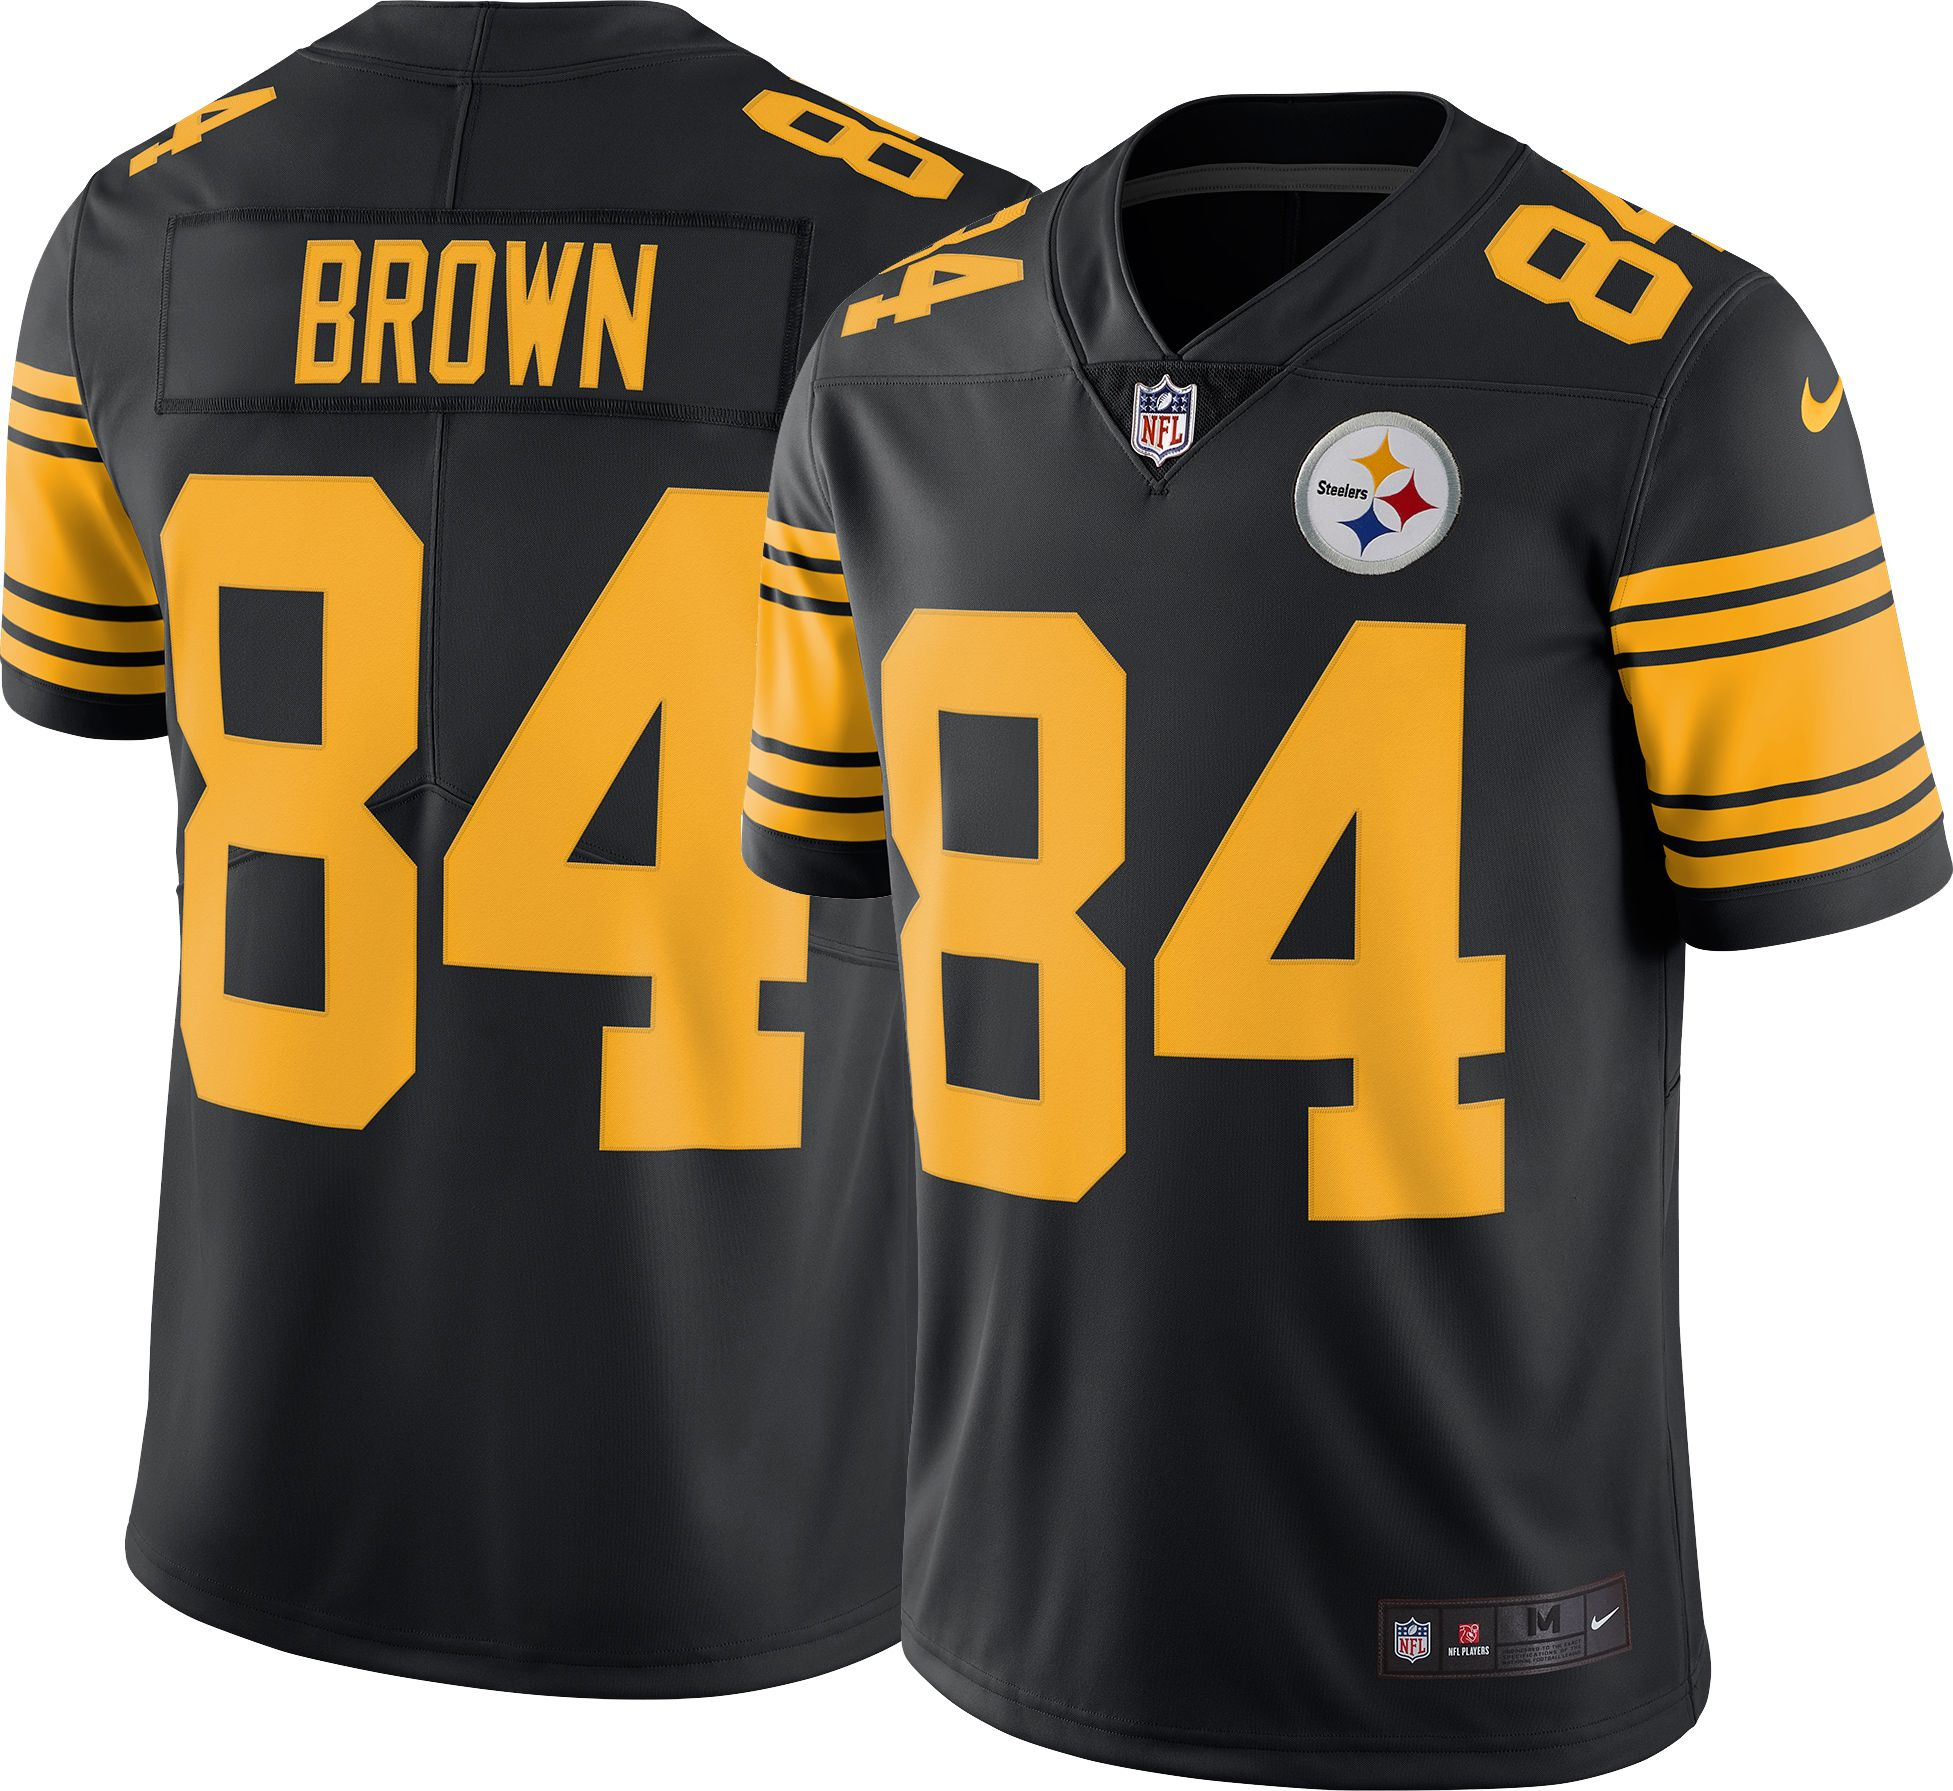 antonio brown jersey nike